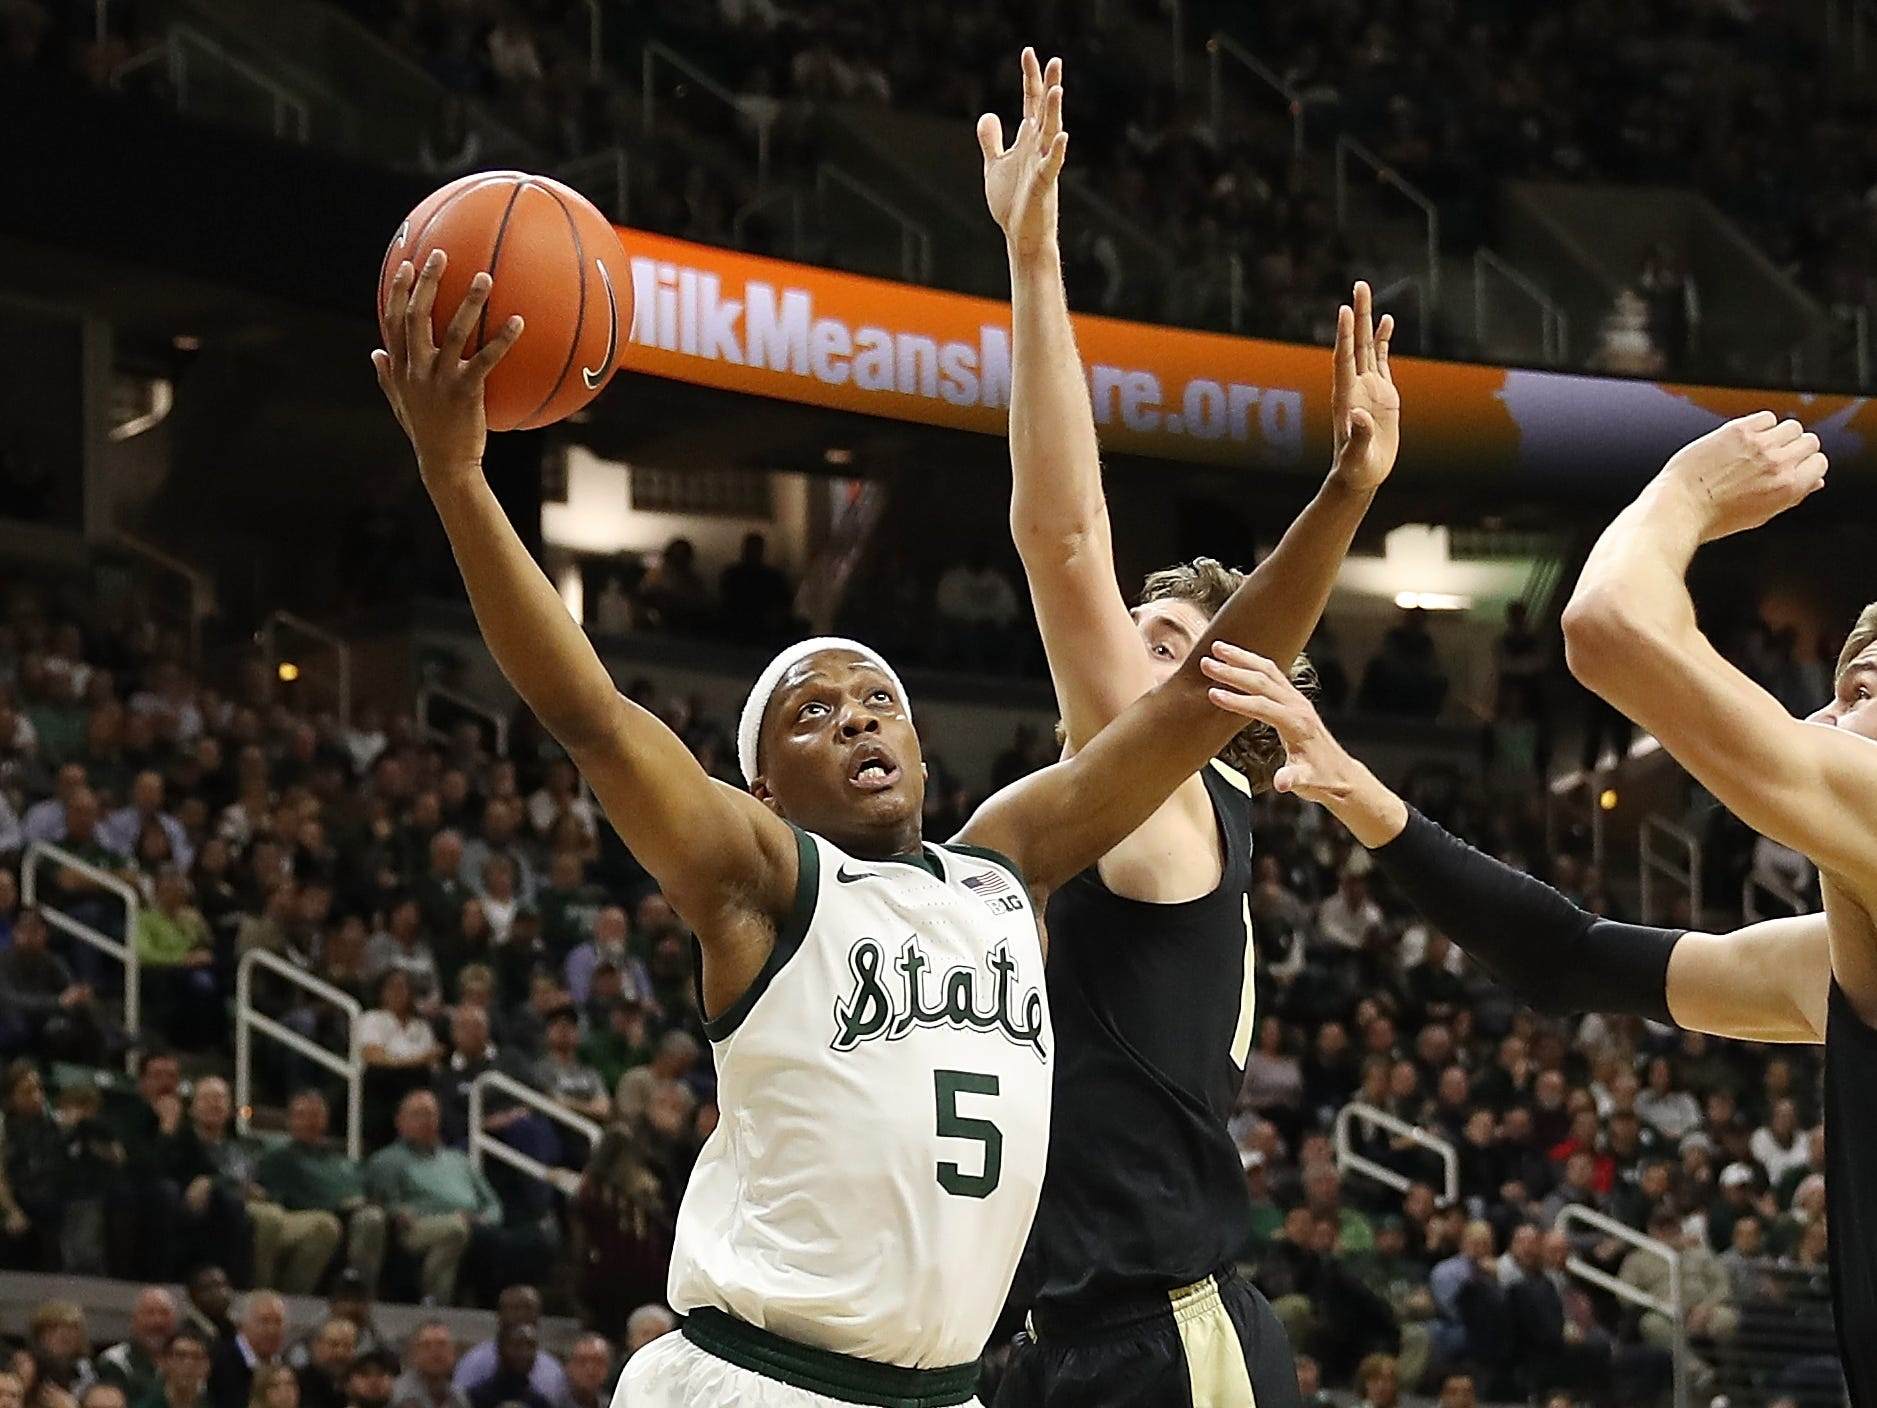 Cassius Winston #5 of the Michigan State Spartans drives to the basket past Evan Boudreaux #12 of the Purdue Boilermakers during the first half at Breslin Center on January 08, 2019 in East Lansing, Michigan.